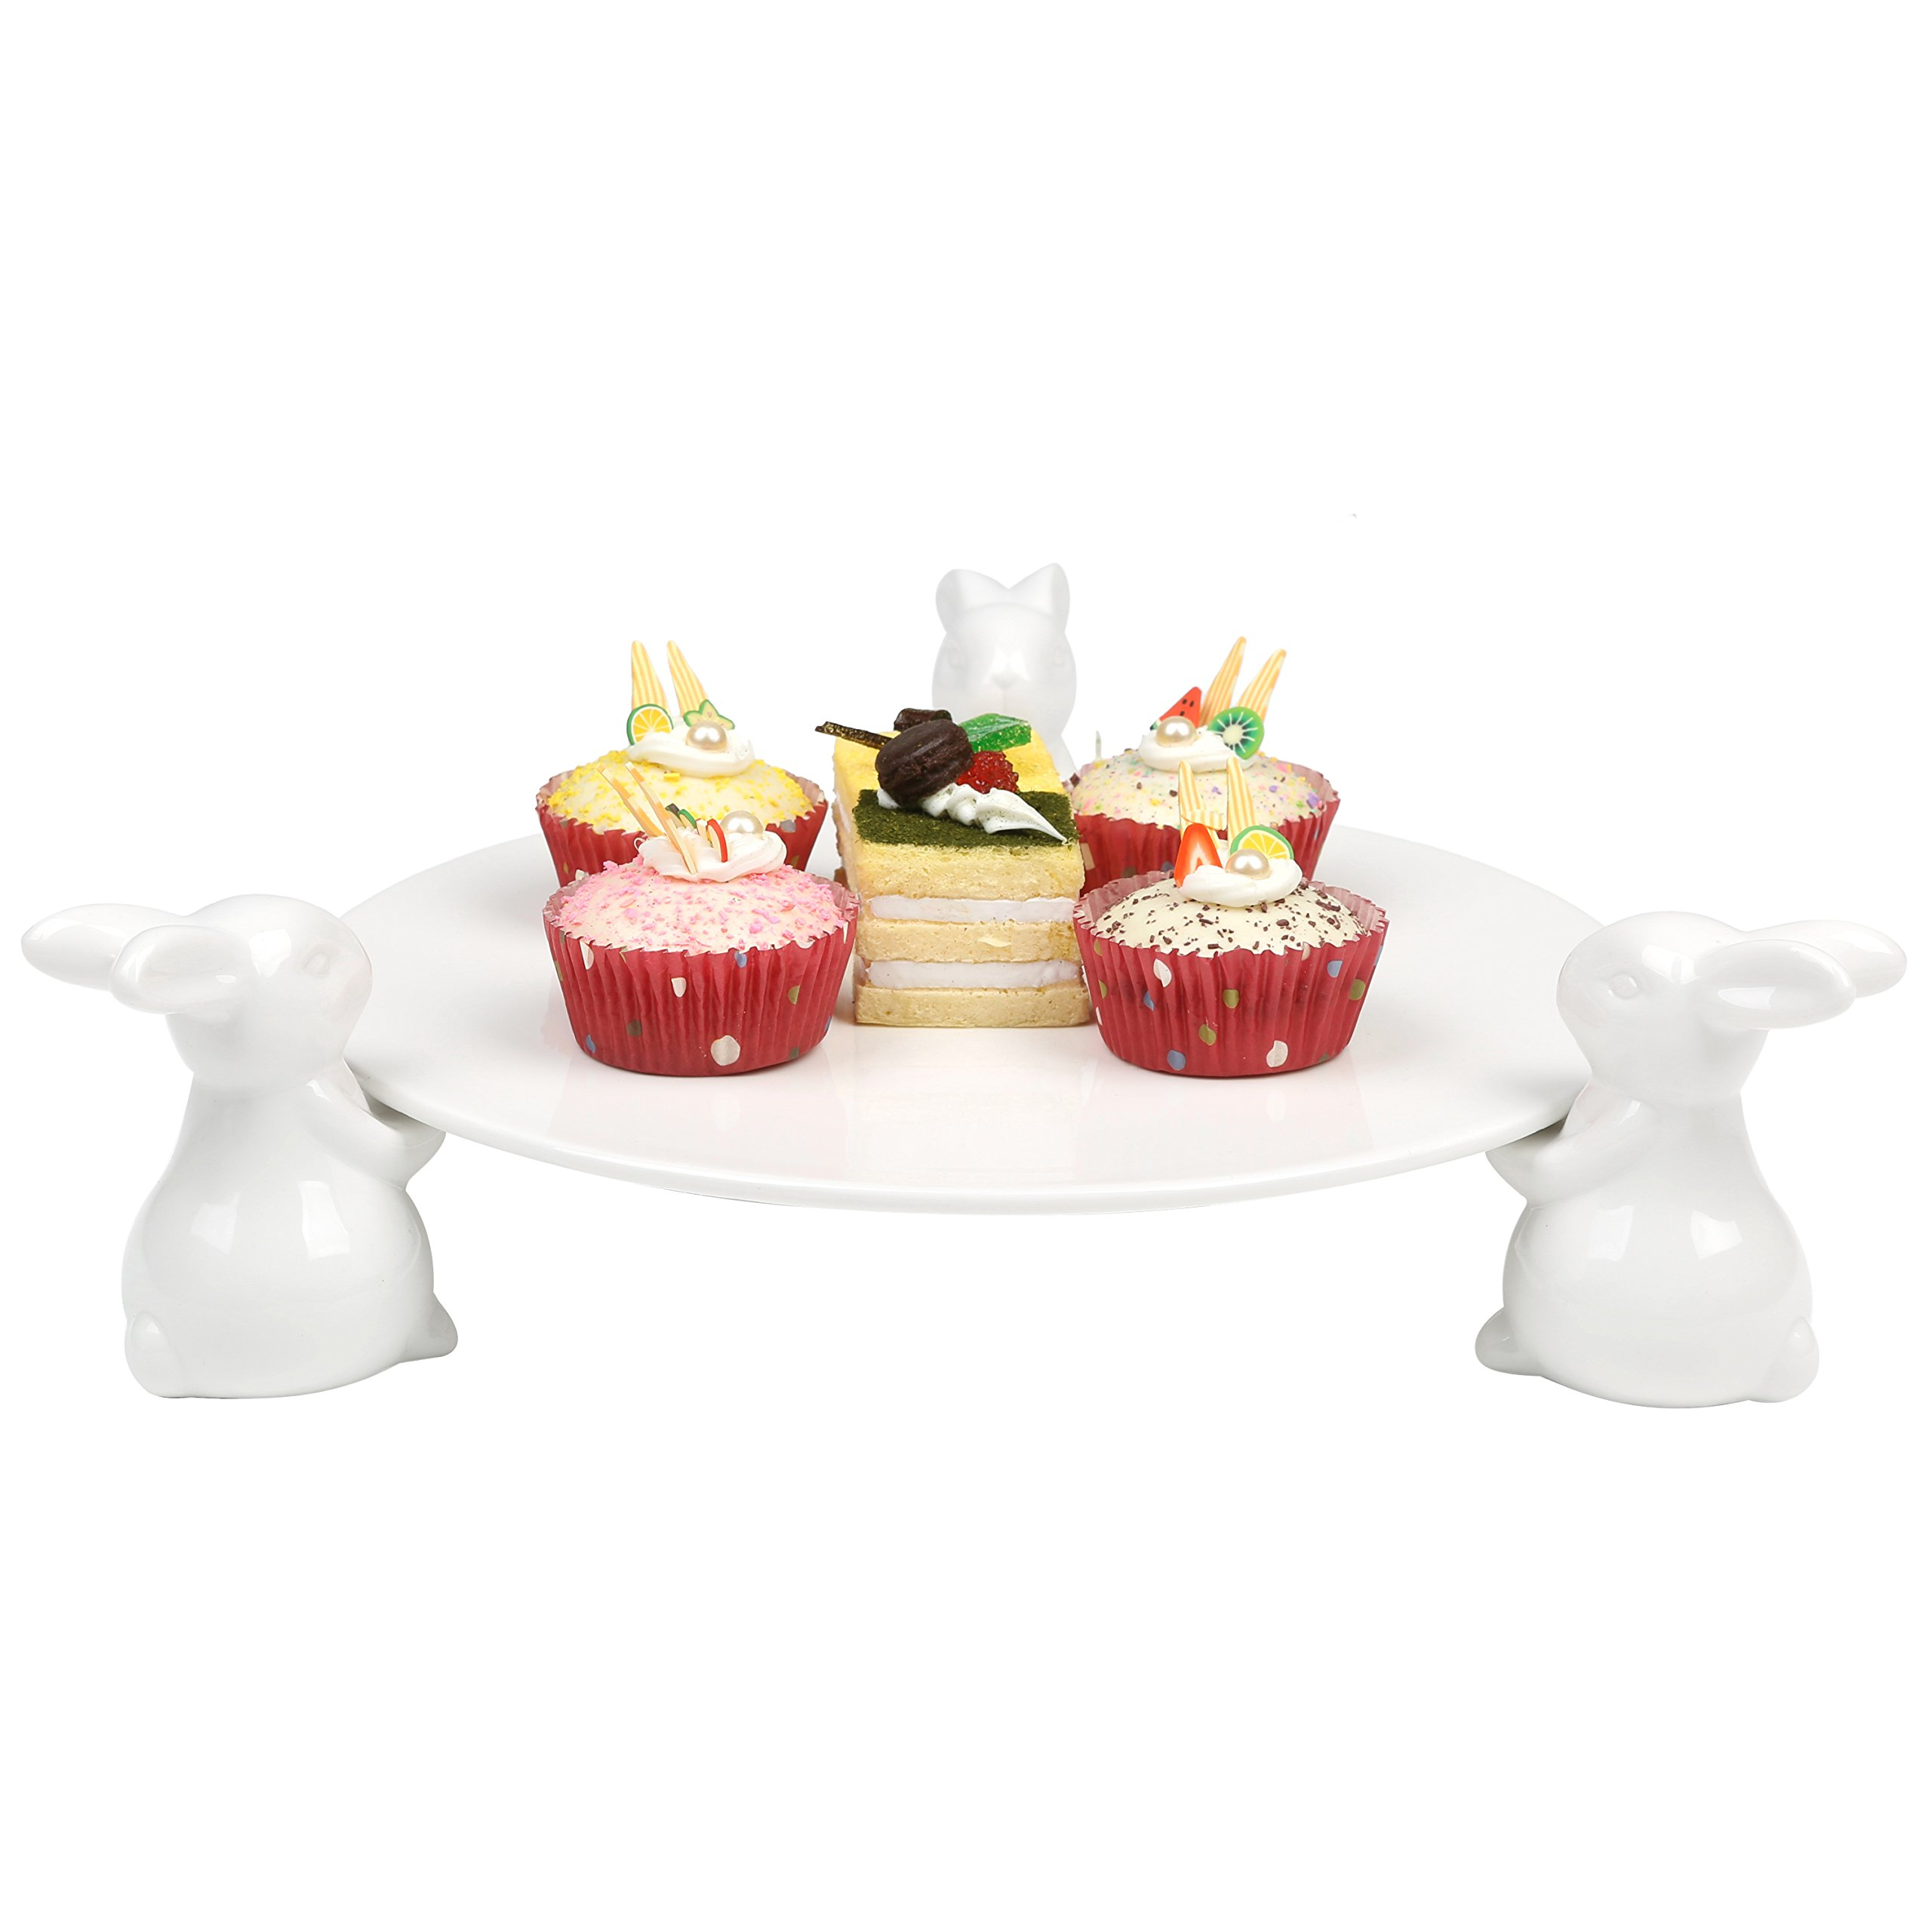 Decorative White Ceramic Bunny Rabbit Cake Stand, 16-Inch Dessert Plates Food Server Display Tray